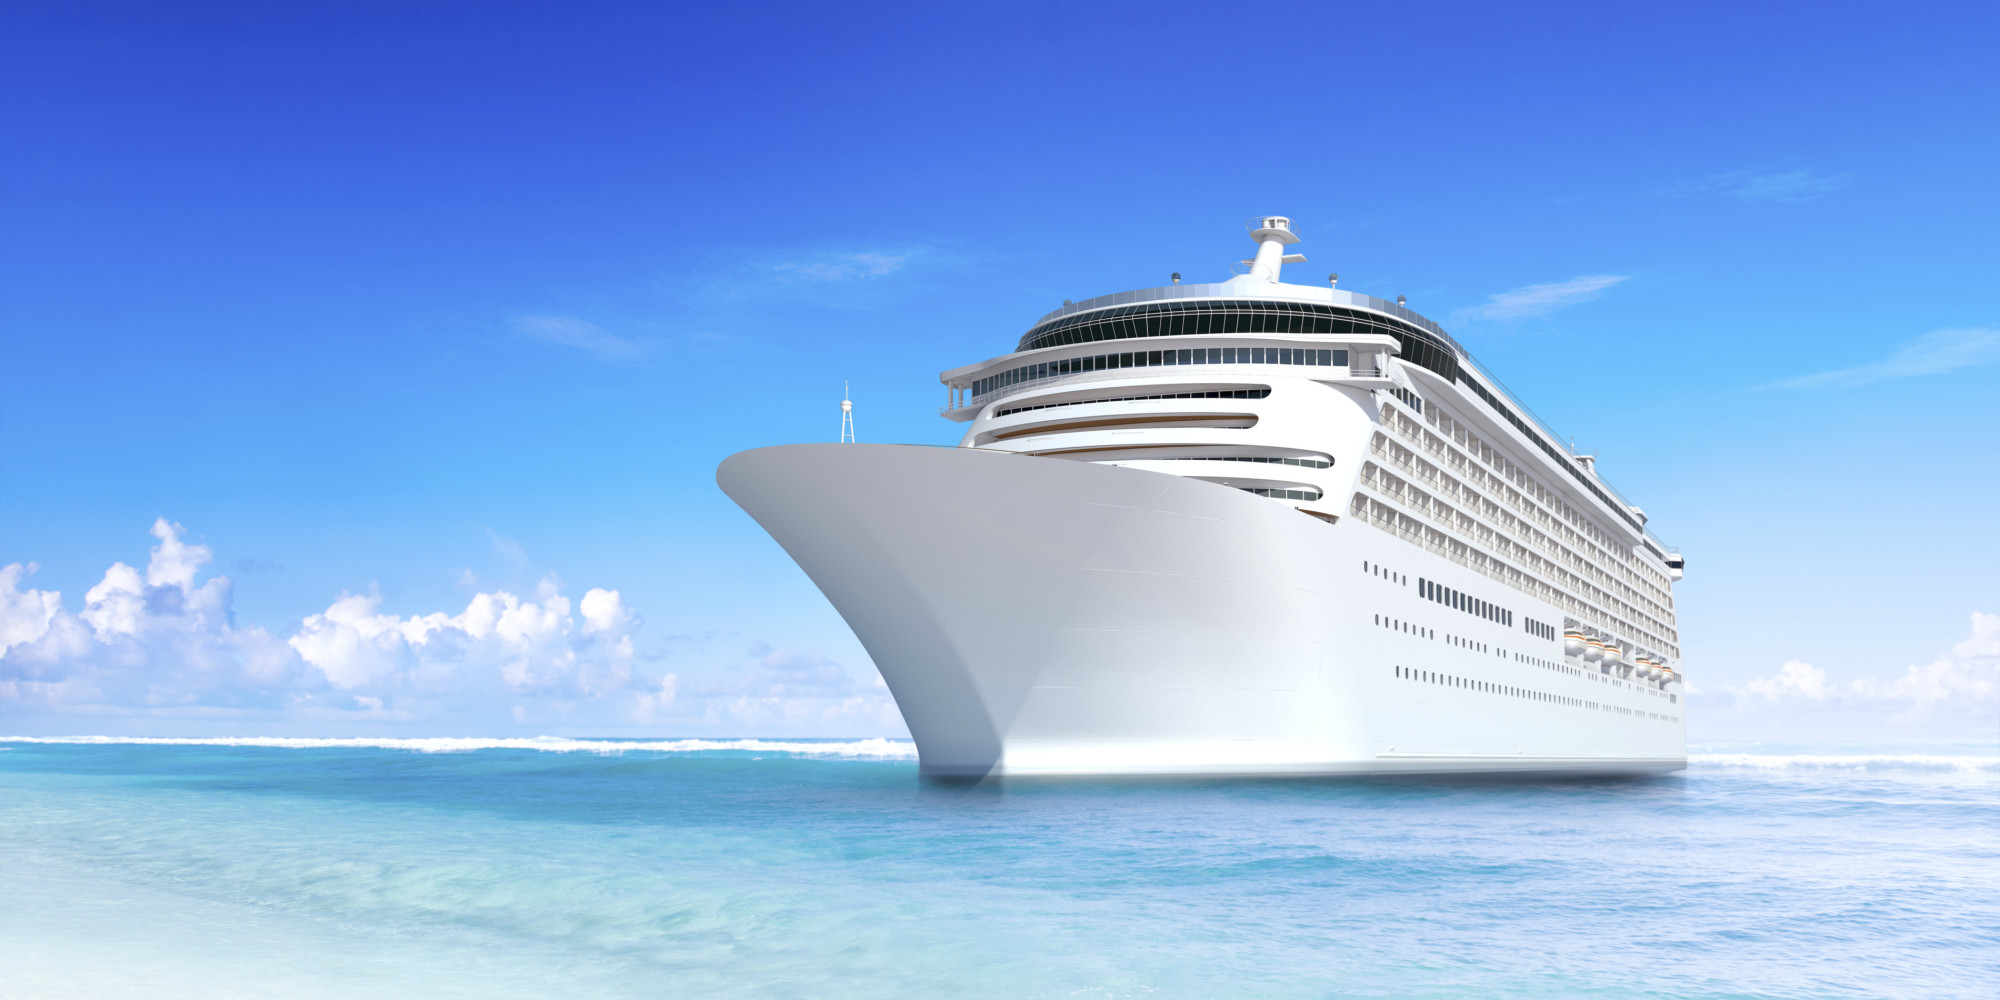 5875 additionally Hoteles Caba C3 B1as Sobre El Agua as well Pnc Bank Arts Virtual Seating Chart Pnc Bank Arts Center Seating Chart Cufkta Inspirational Ex le Templates 454301 also Summer Drinks Offer Poster Artwork 60 further Luxury Ocean Cruises. on 4